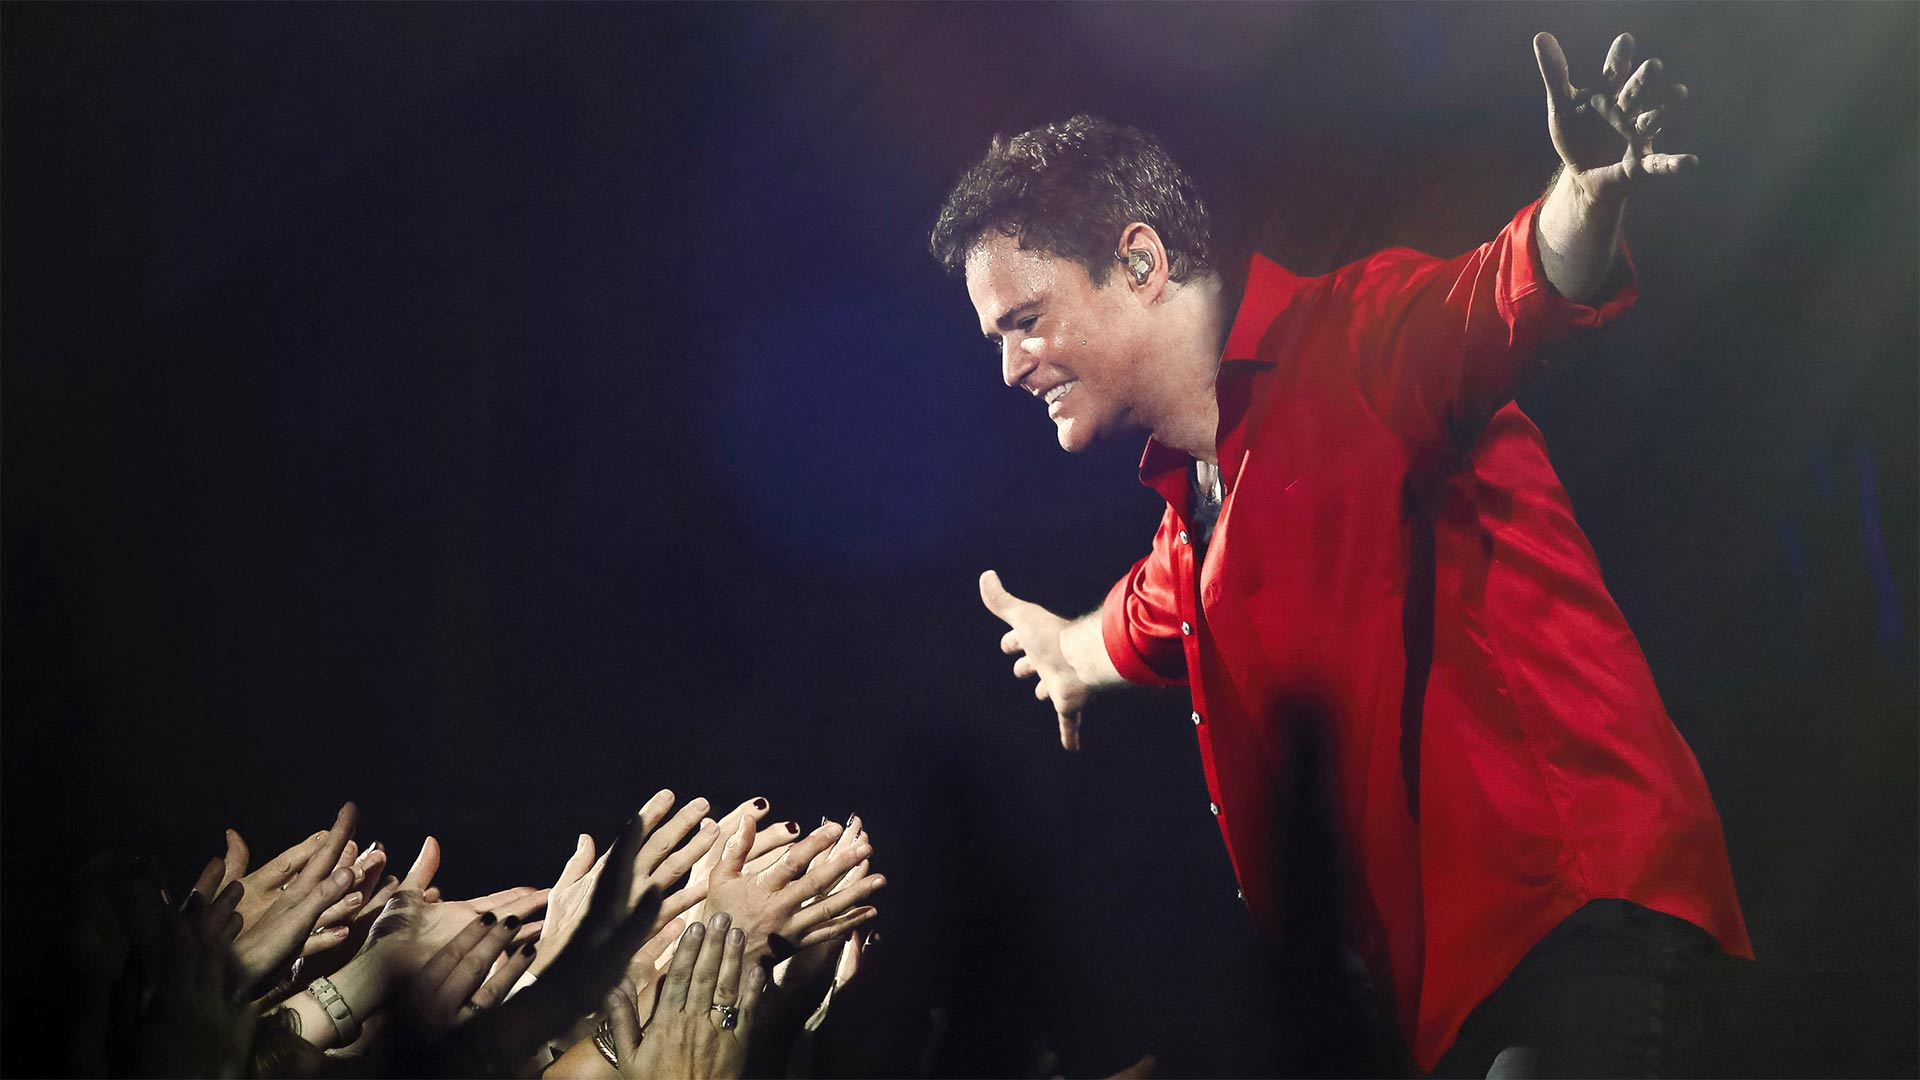 Donny Osmond performs at the Birmingham National Exhibition Center, the final performance of his sold-out 2017 UK arena tour.